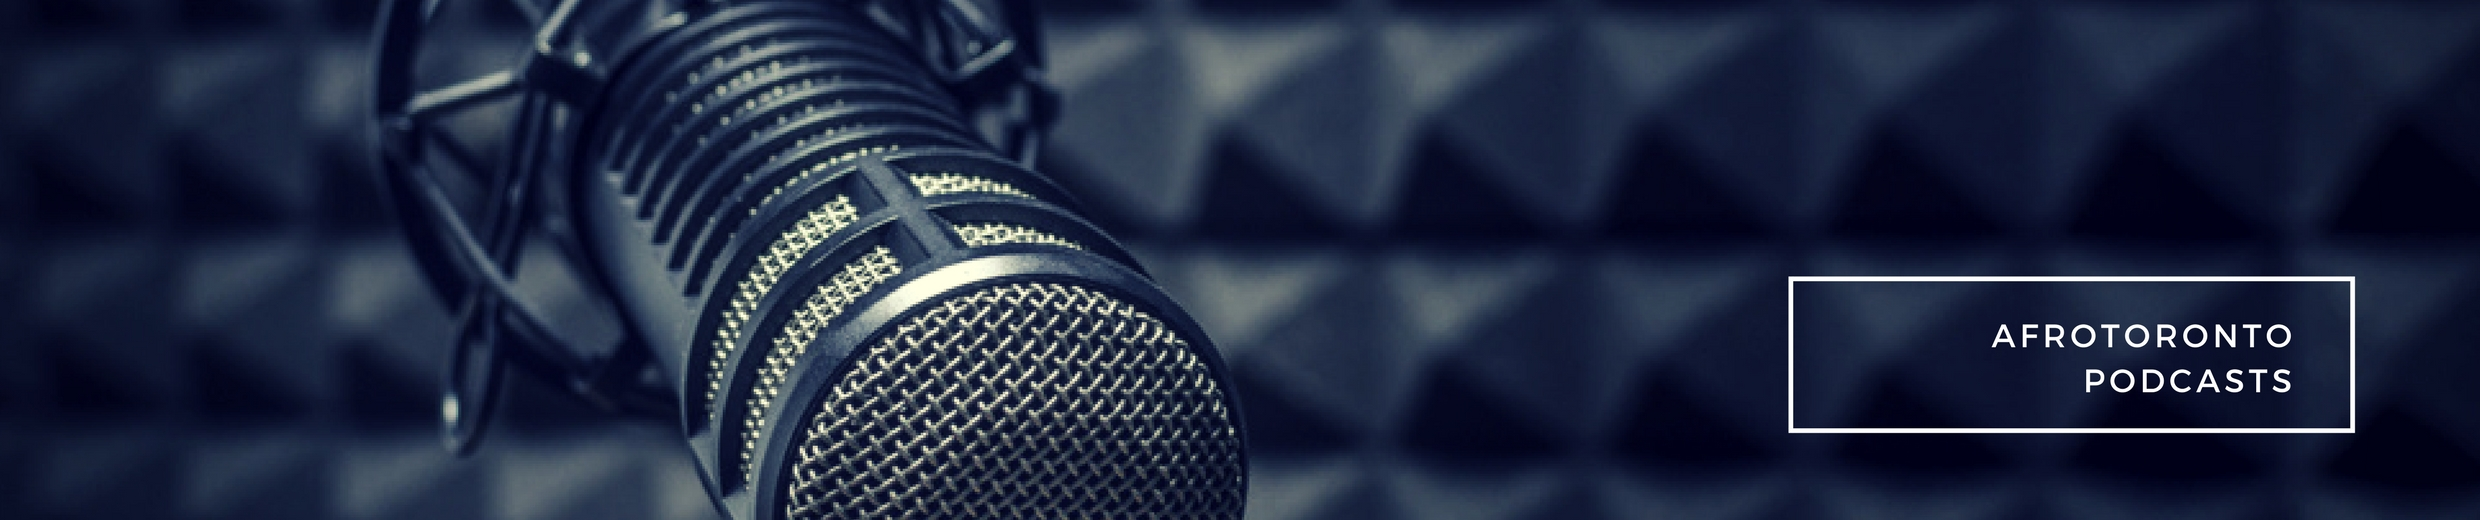 Podcasts header